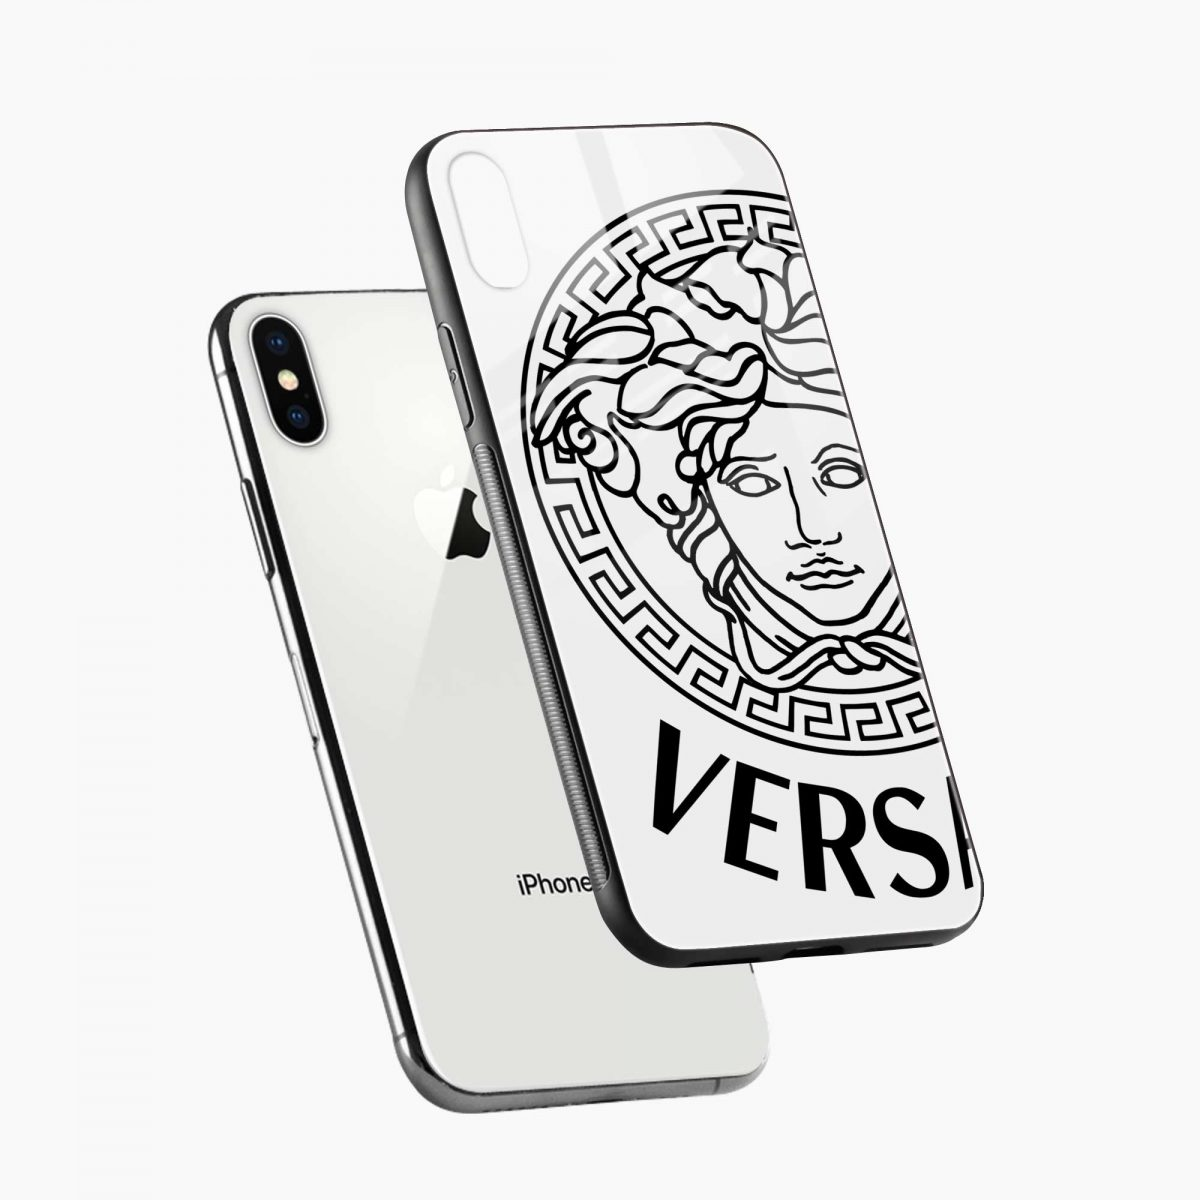 versace black white diagonal view apple iphone x xs max back cover